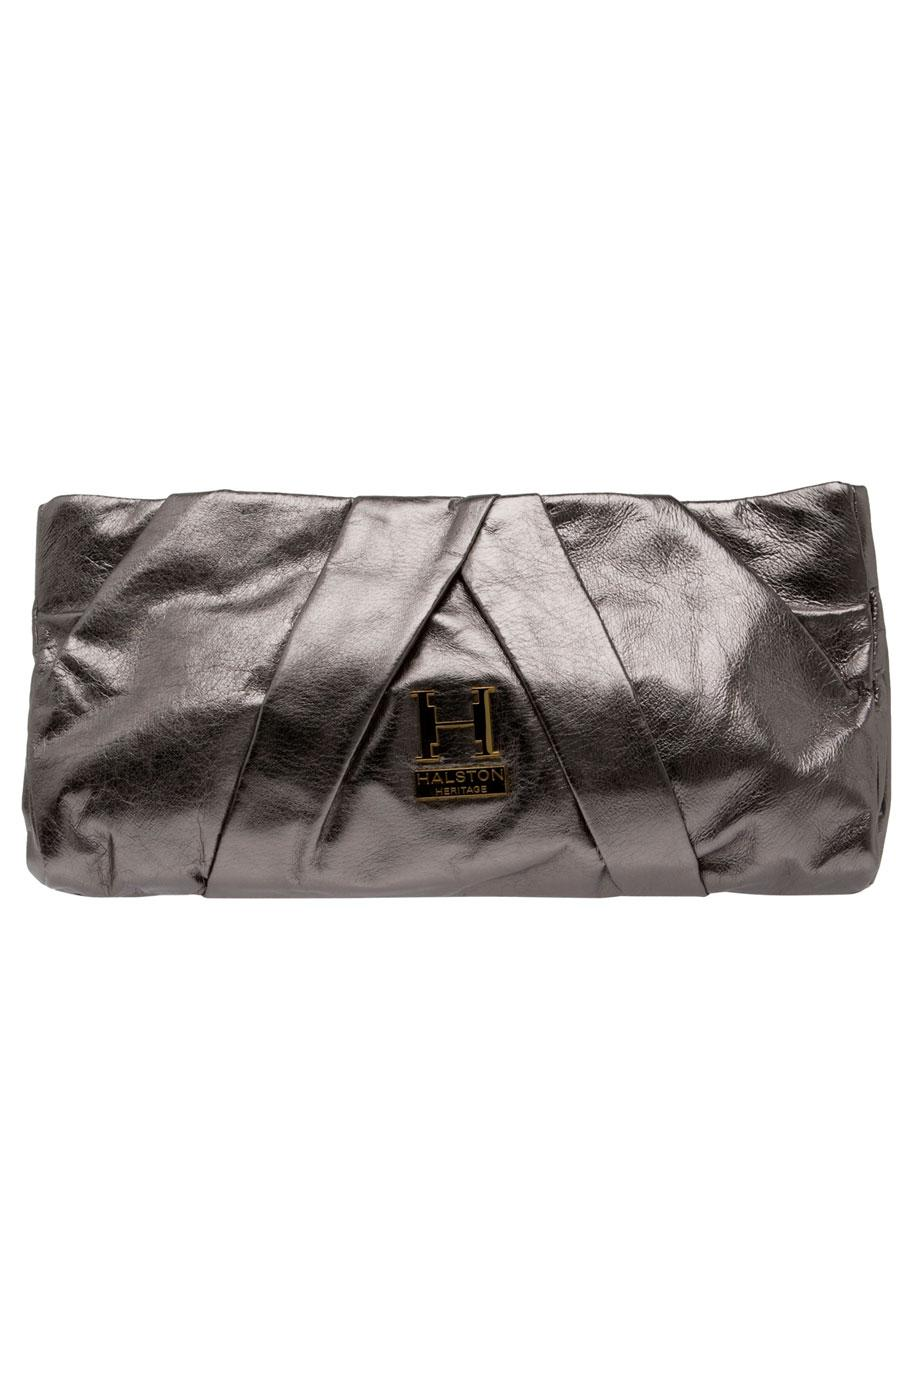 Lyst - Halston Alice Stingray Pleated Clutch in Metallic ef95c3035937f